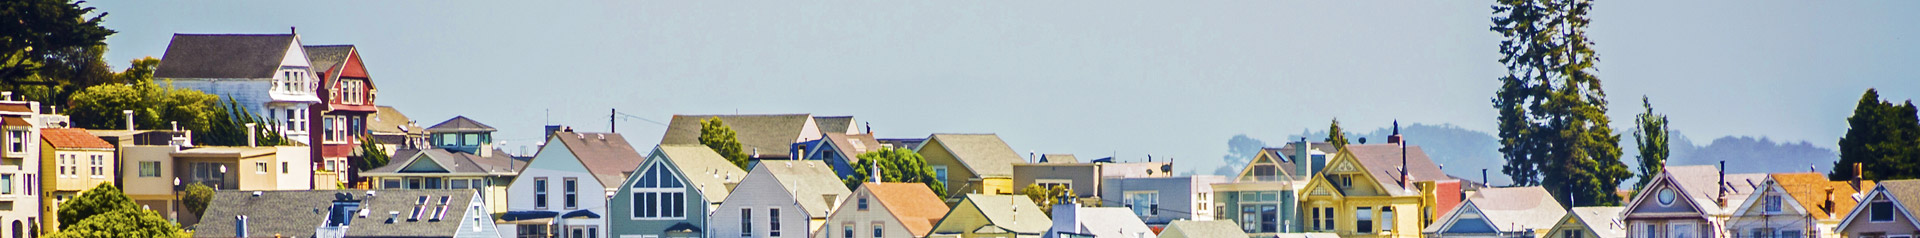 Roof Tops - Background Image